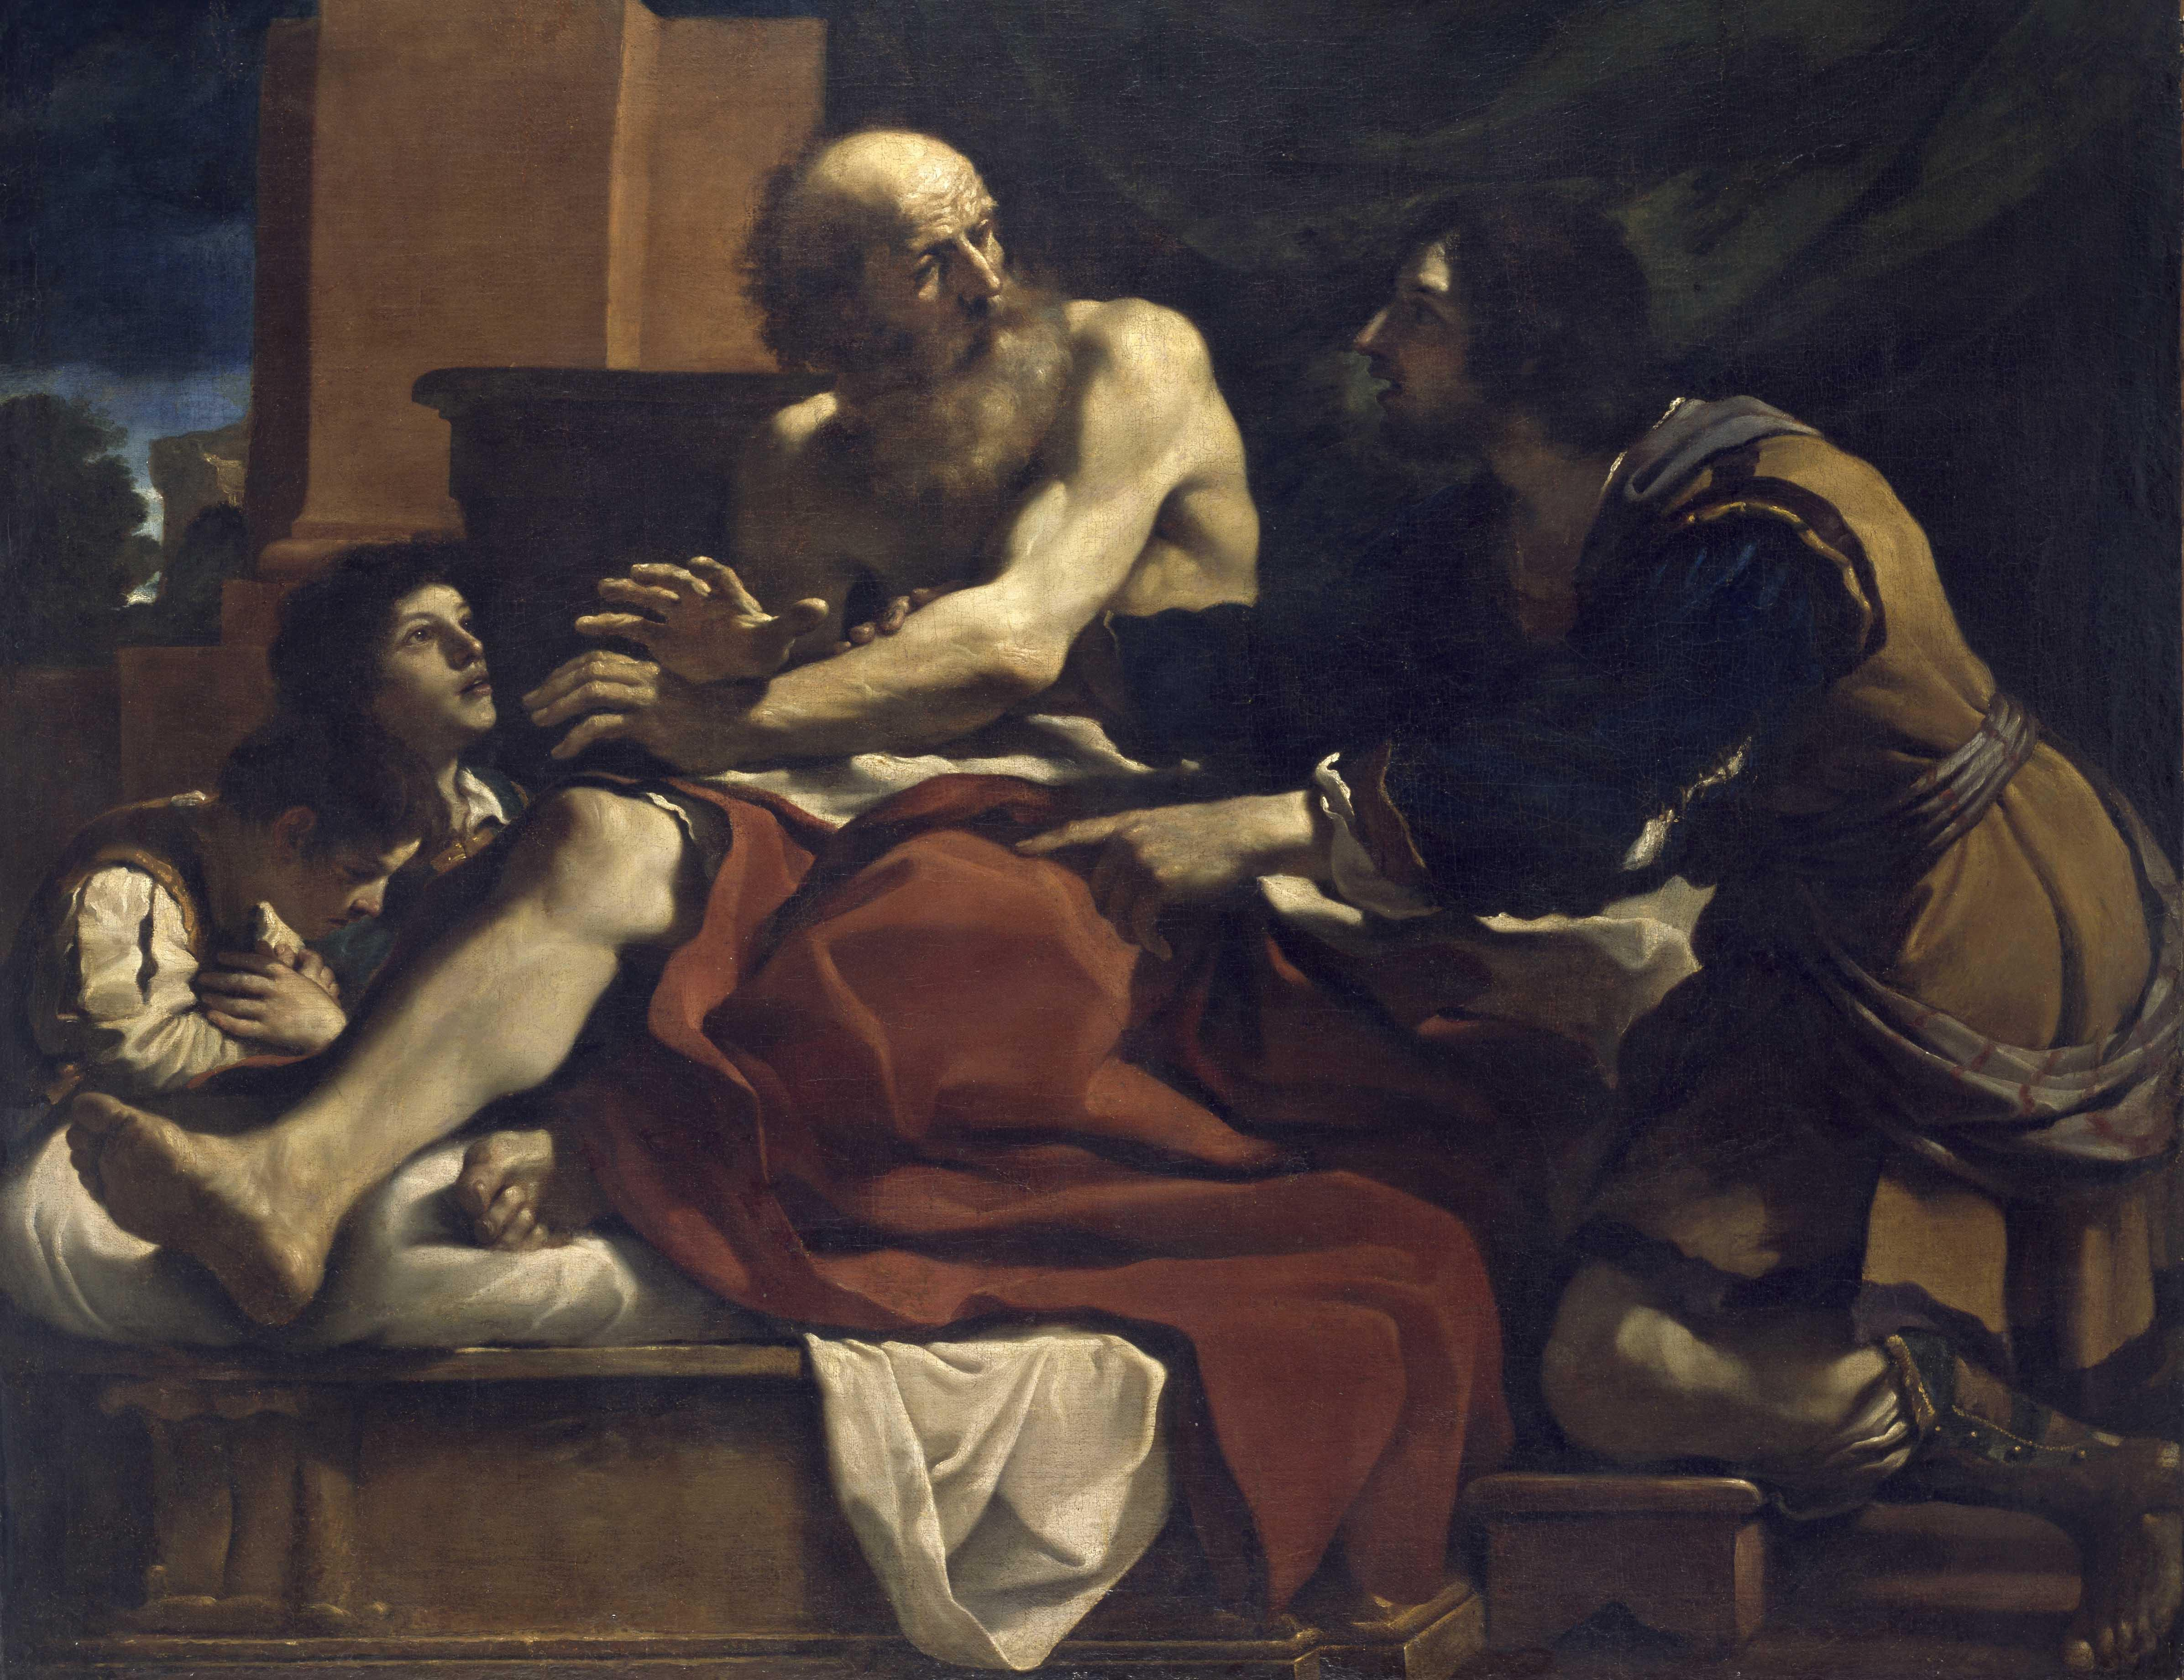 File:Guercino Jacob Ephraim and Manasseh.jpg - Wikipedia, the free ...